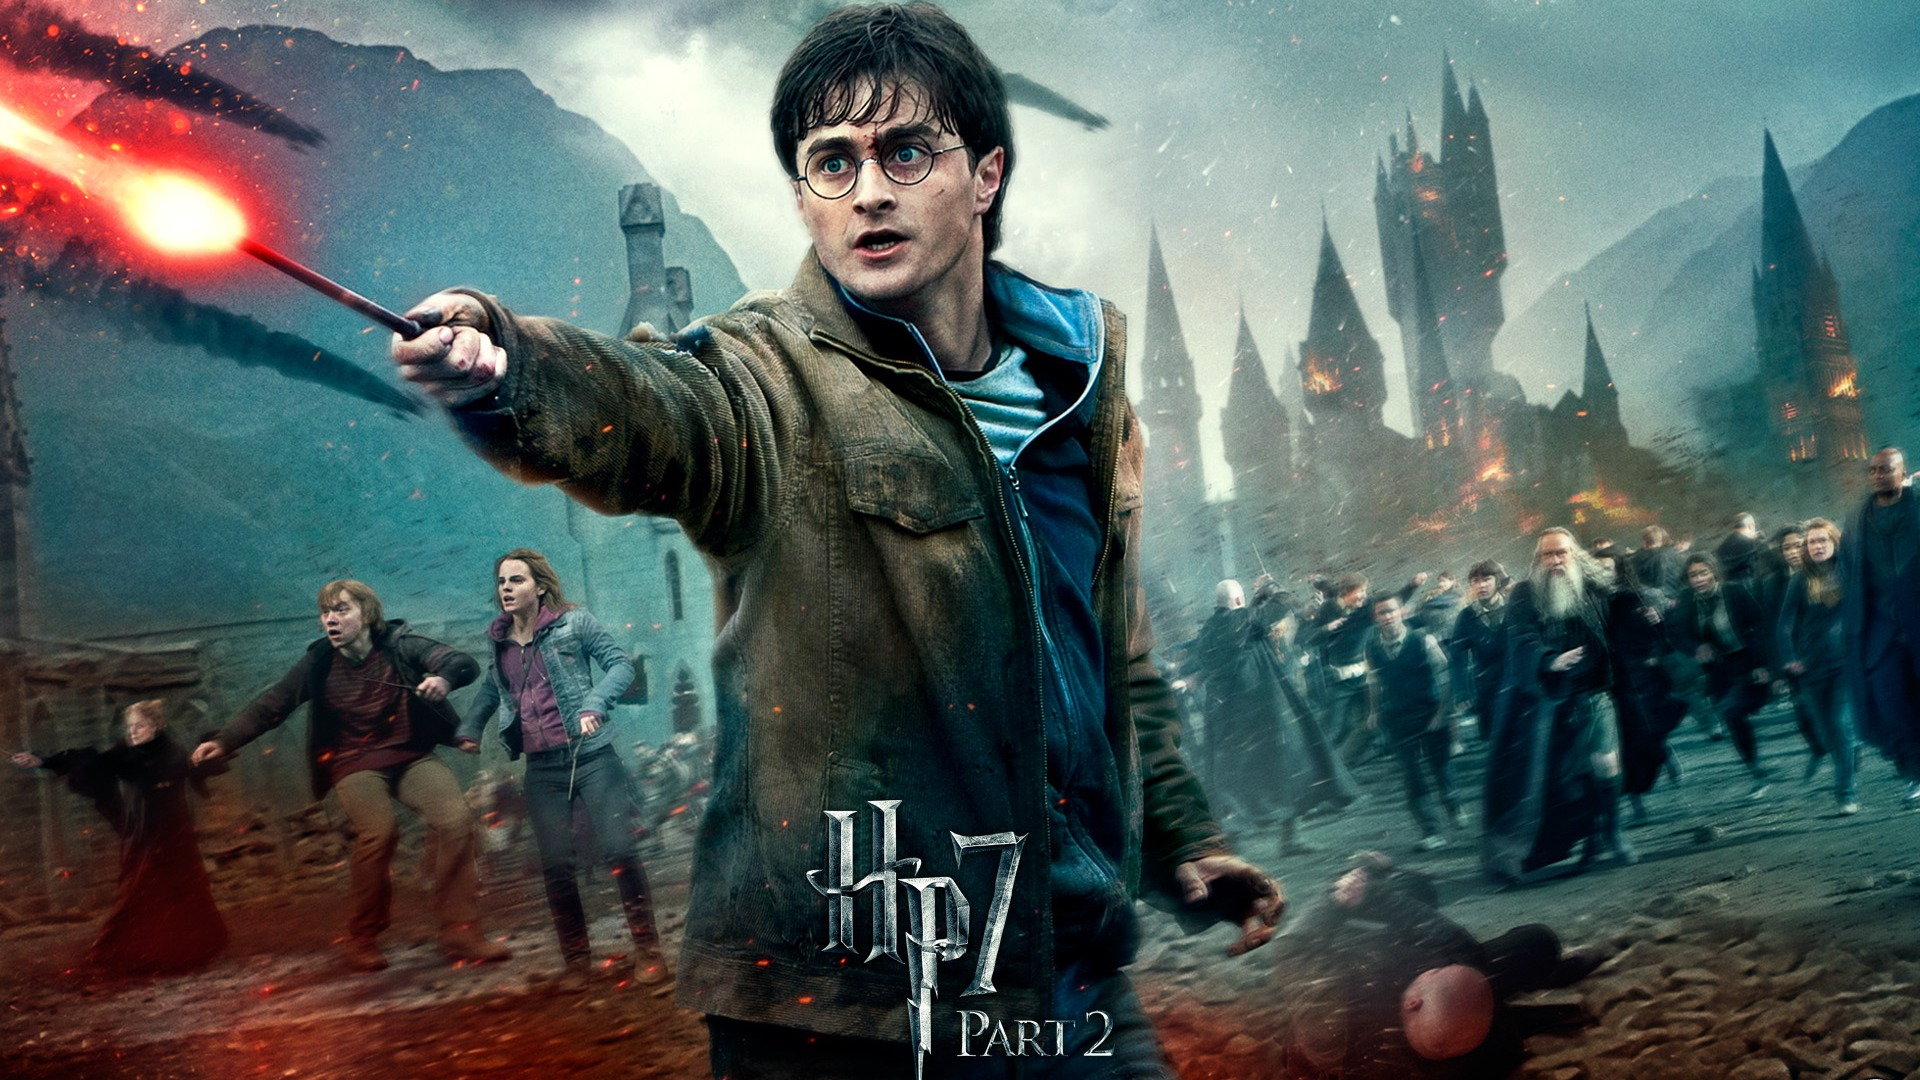 Movie HD Wallpapers